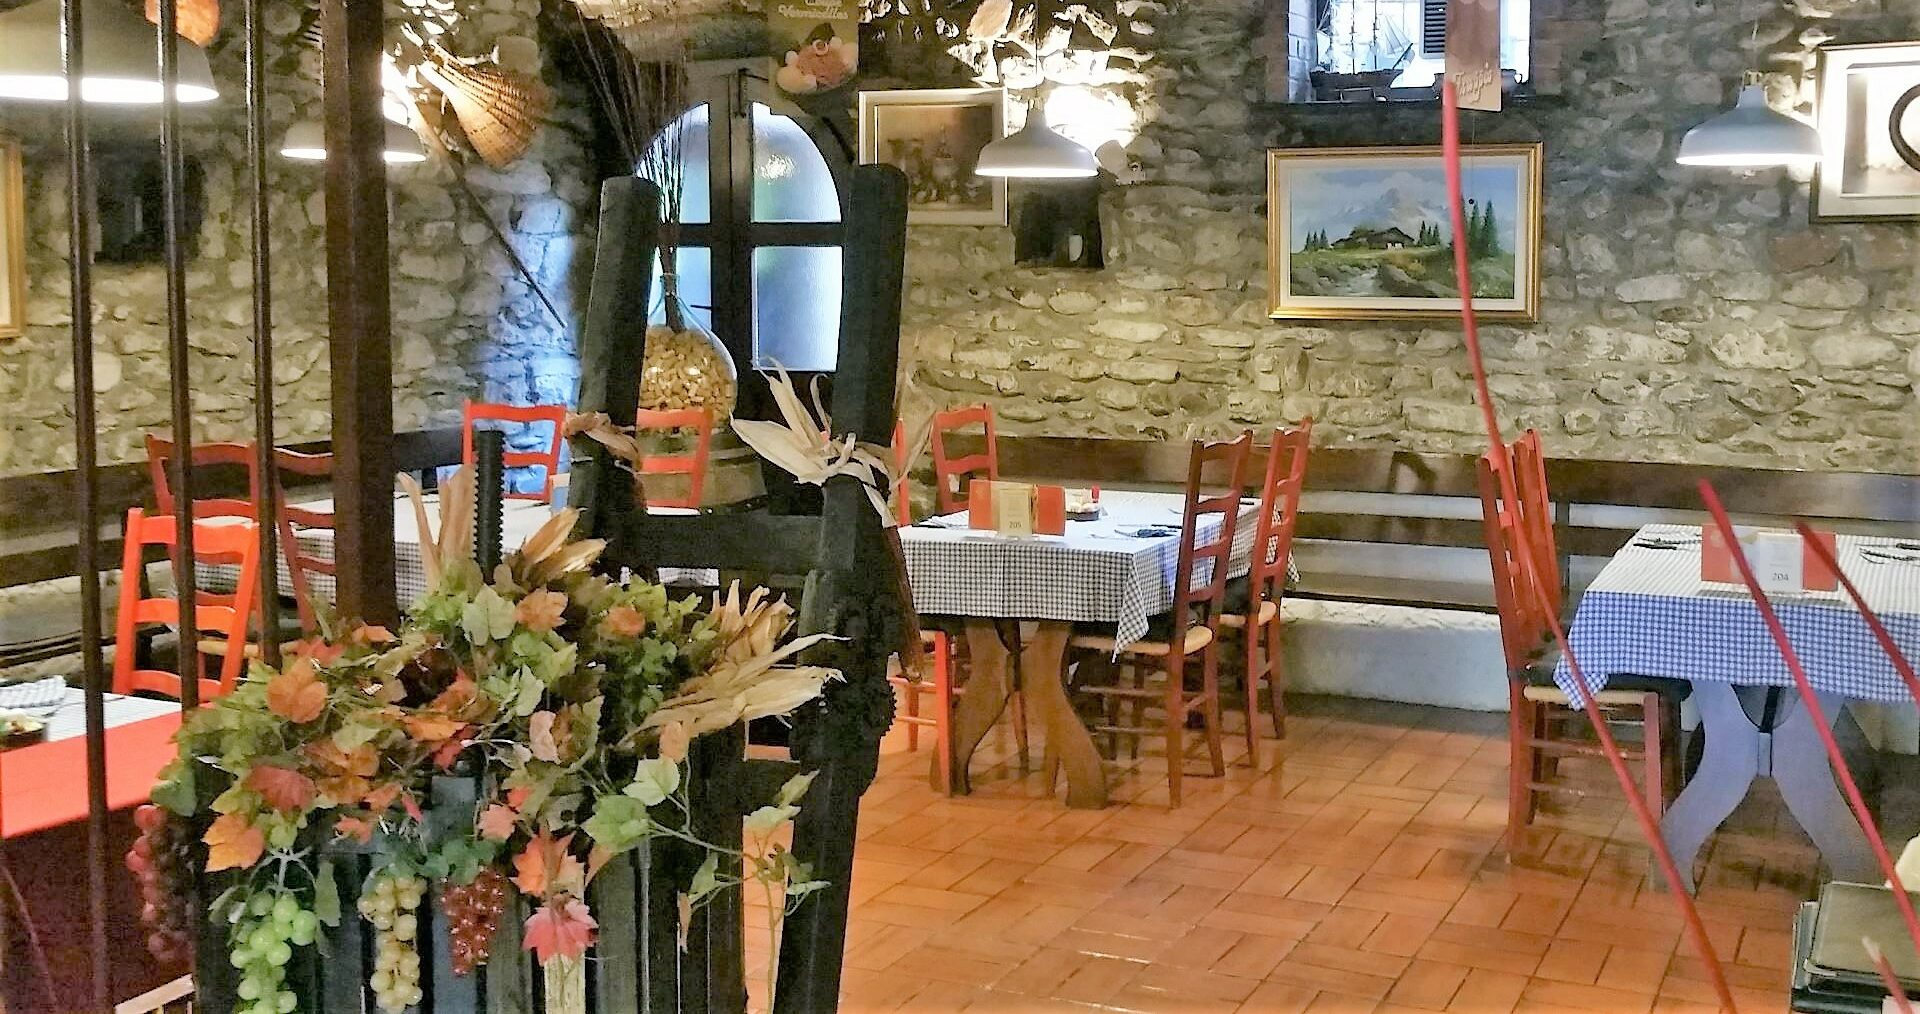 Osteria Battello